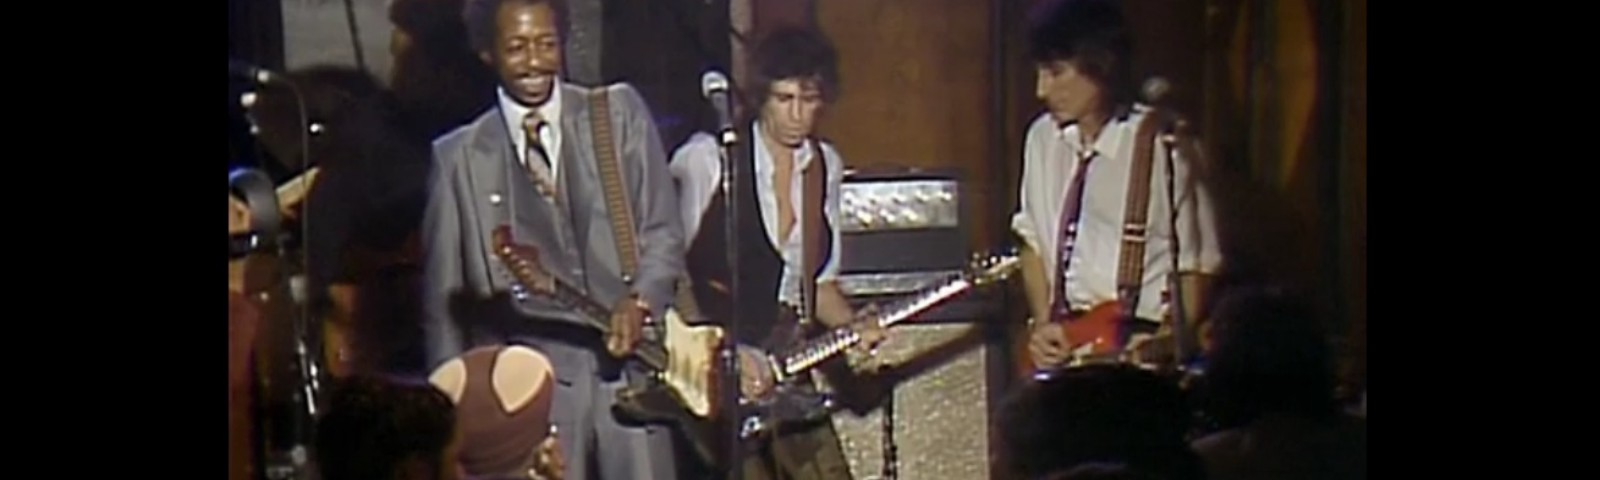 Three guitarists playing Blues, Lefty Dizz, Keith Richards and Ronnie Wood at the Checkerboard Lounge, Chicago in 1981.